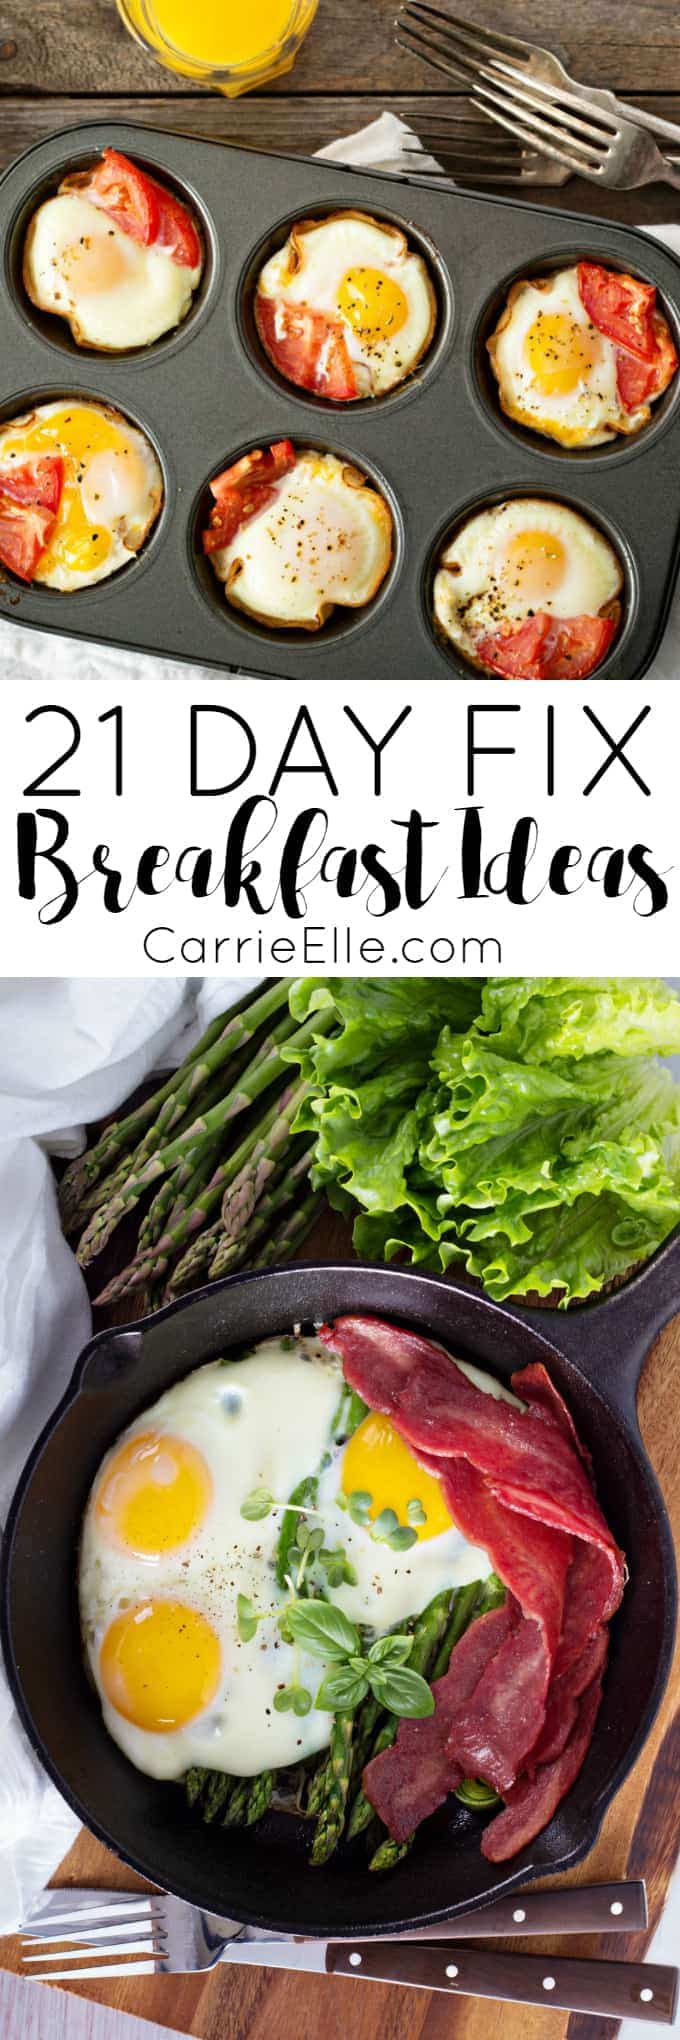 21 Day Fix Breakfasts